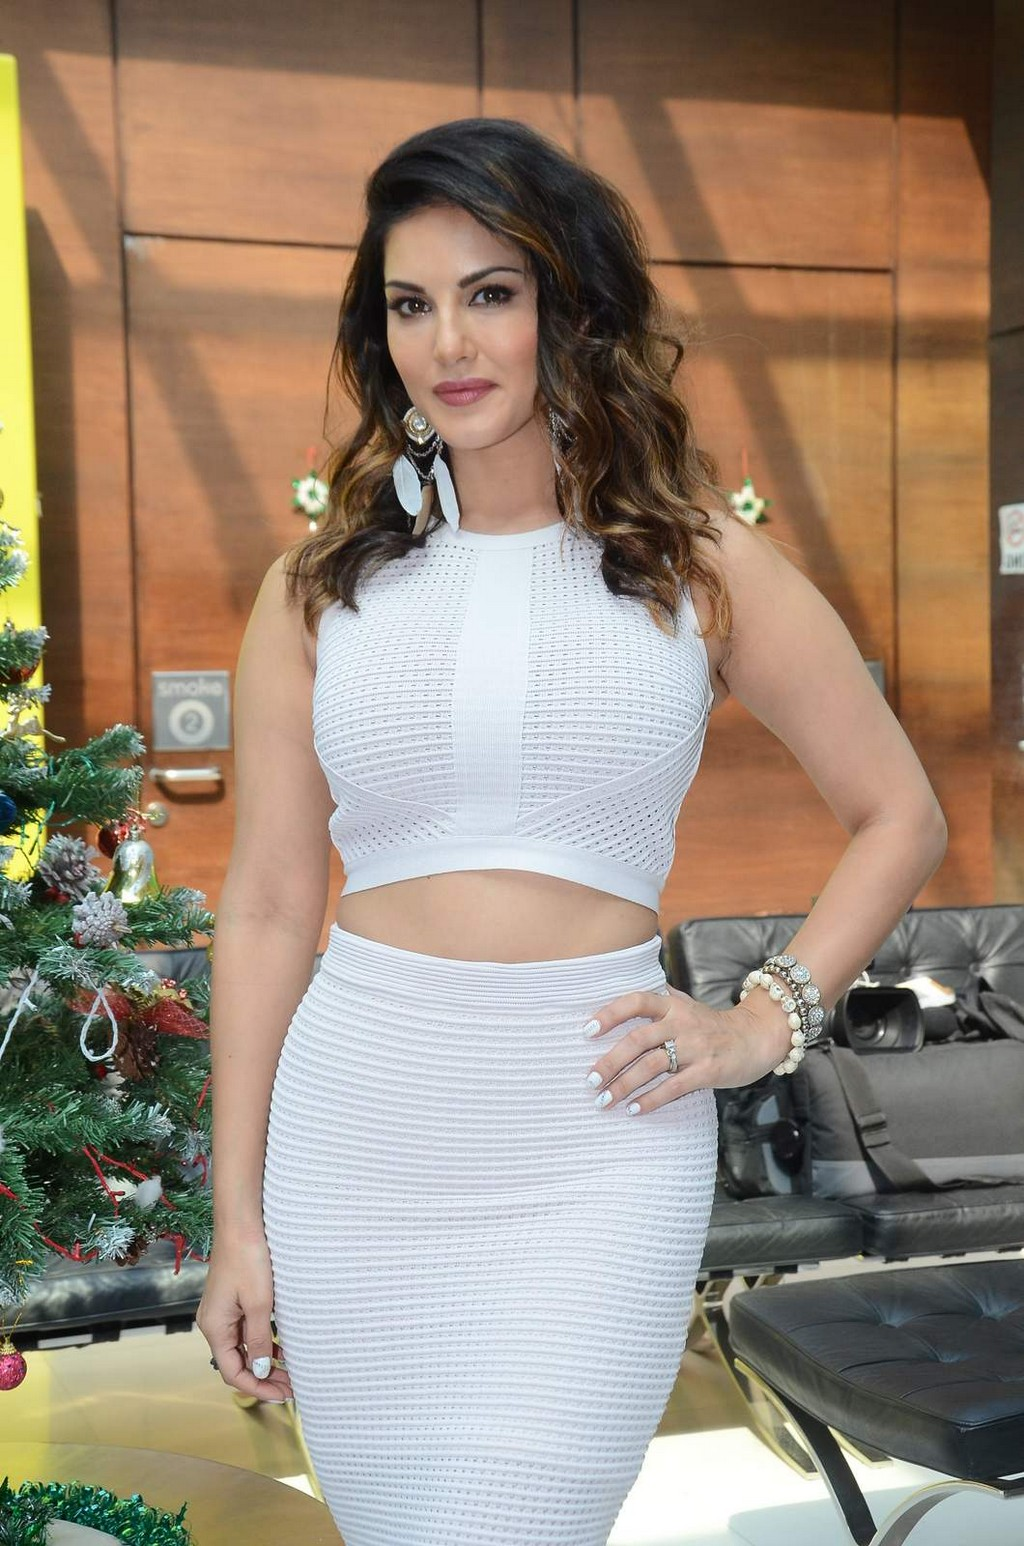 Bollywood Actress Sunny Leone Hot Legs Thigh Show Photos In White Dress